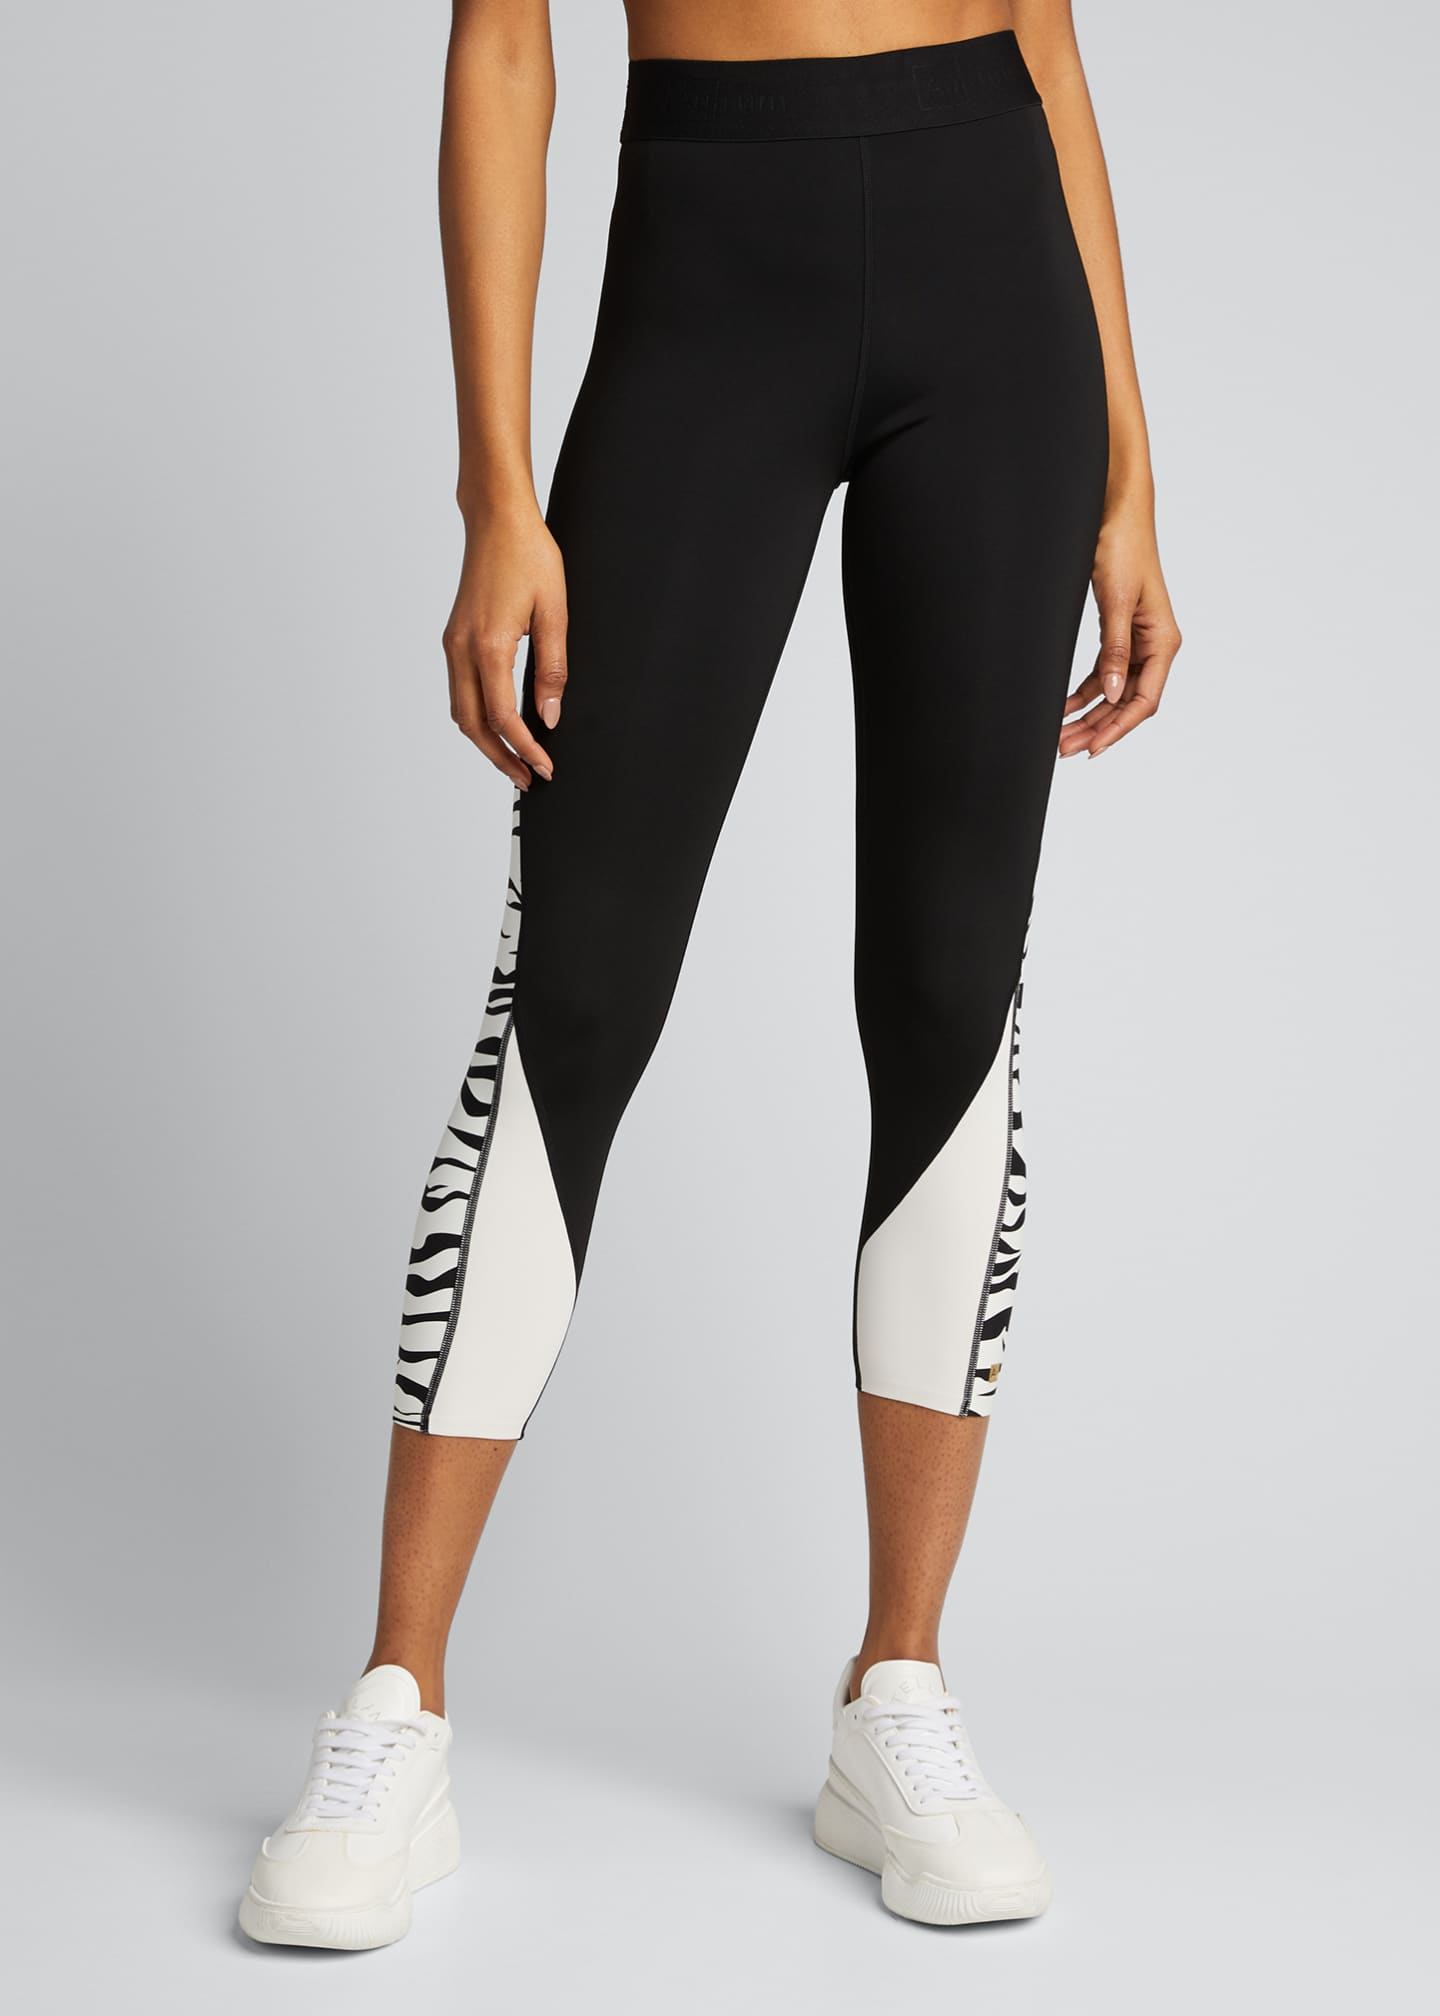 Image 3 of 5: Fearless Zebra Active Leggings